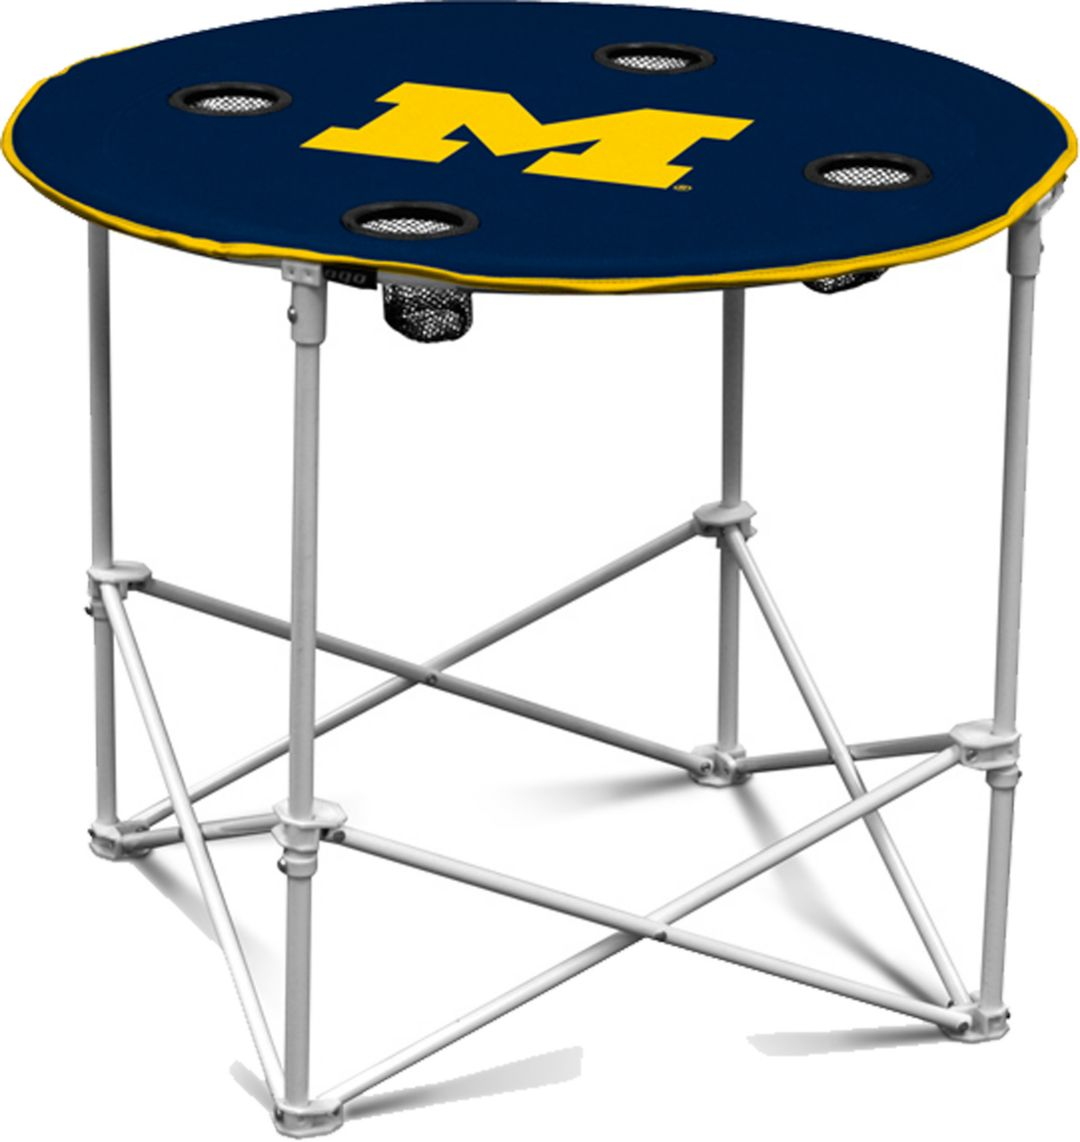 Astonishing Michigan Wolverines Round Table Gmtry Best Dining Table And Chair Ideas Images Gmtryco